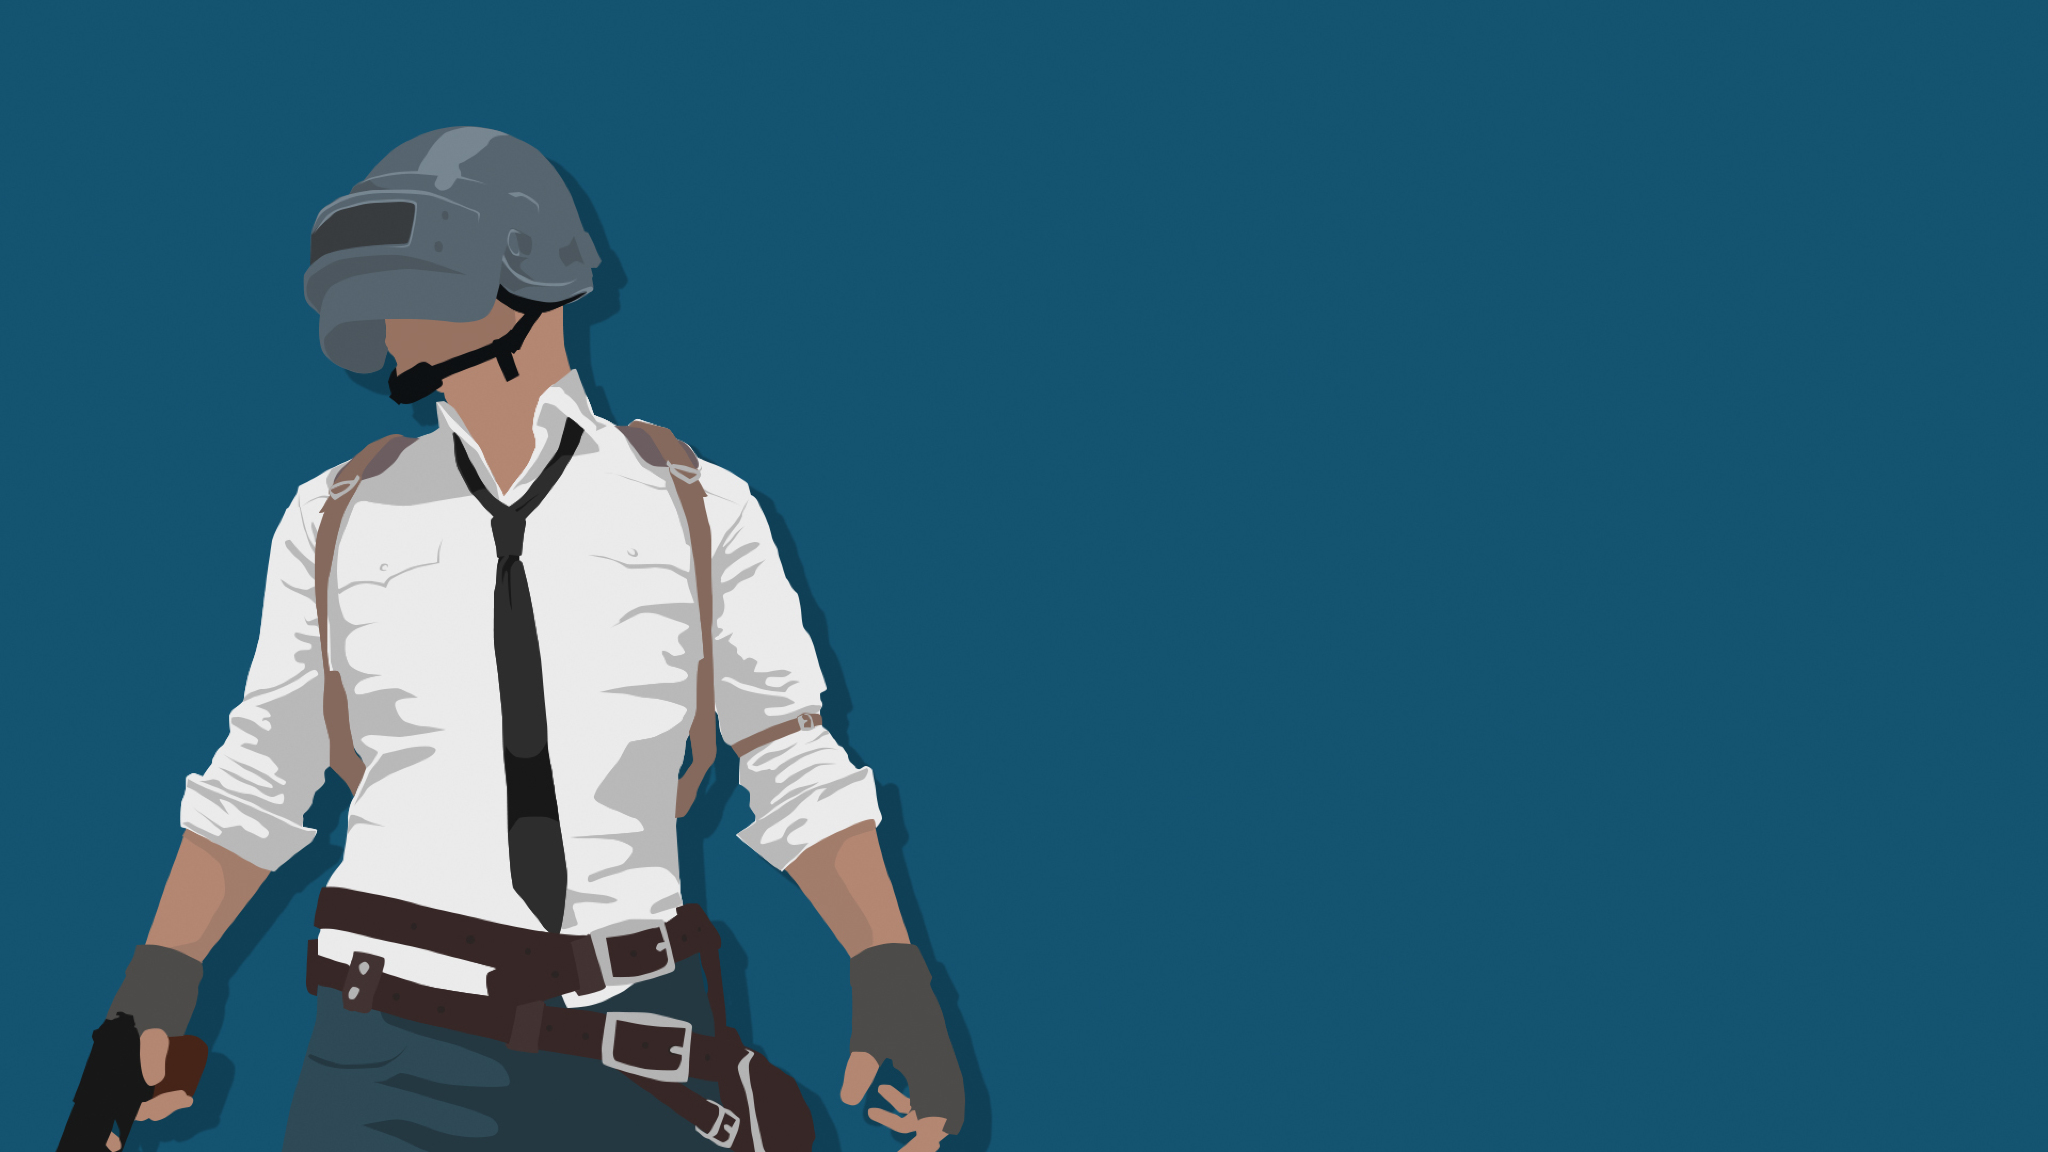 Pubg Minimal Art, Full HD Wallpaper